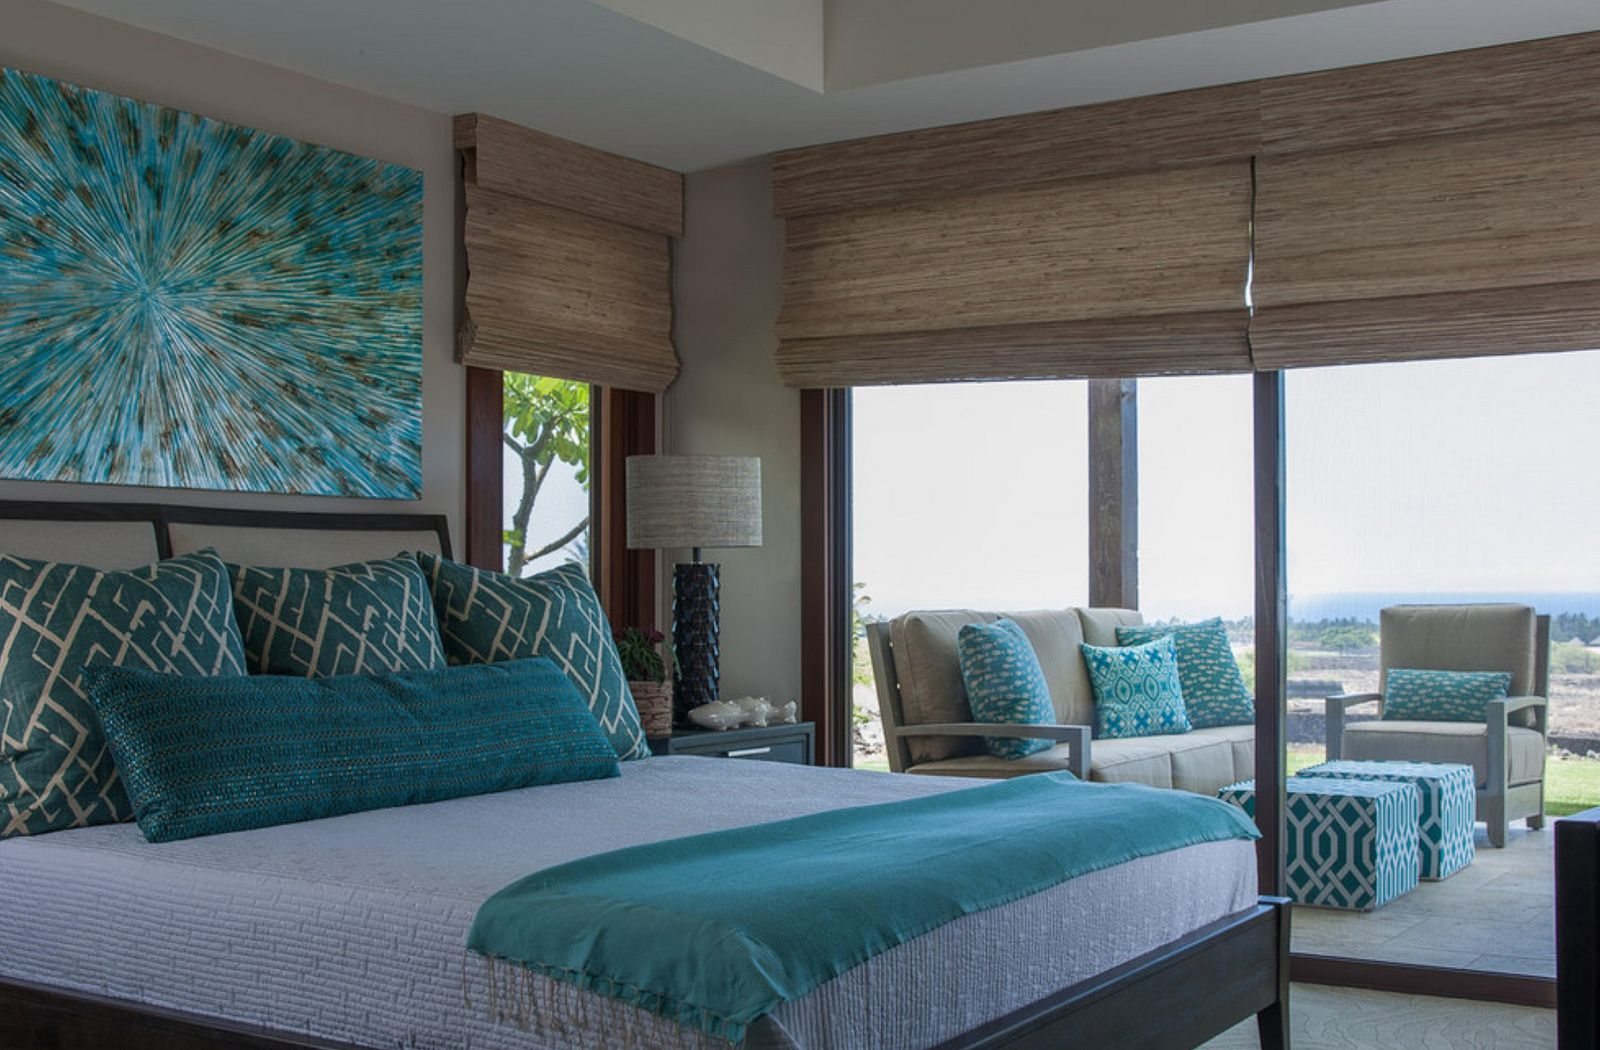 Living After Midnite Room For Style Interior Decorating Caribbean Style Ocean Inspired Bedroom Coastal Bedrooms Eclectic Bedroom